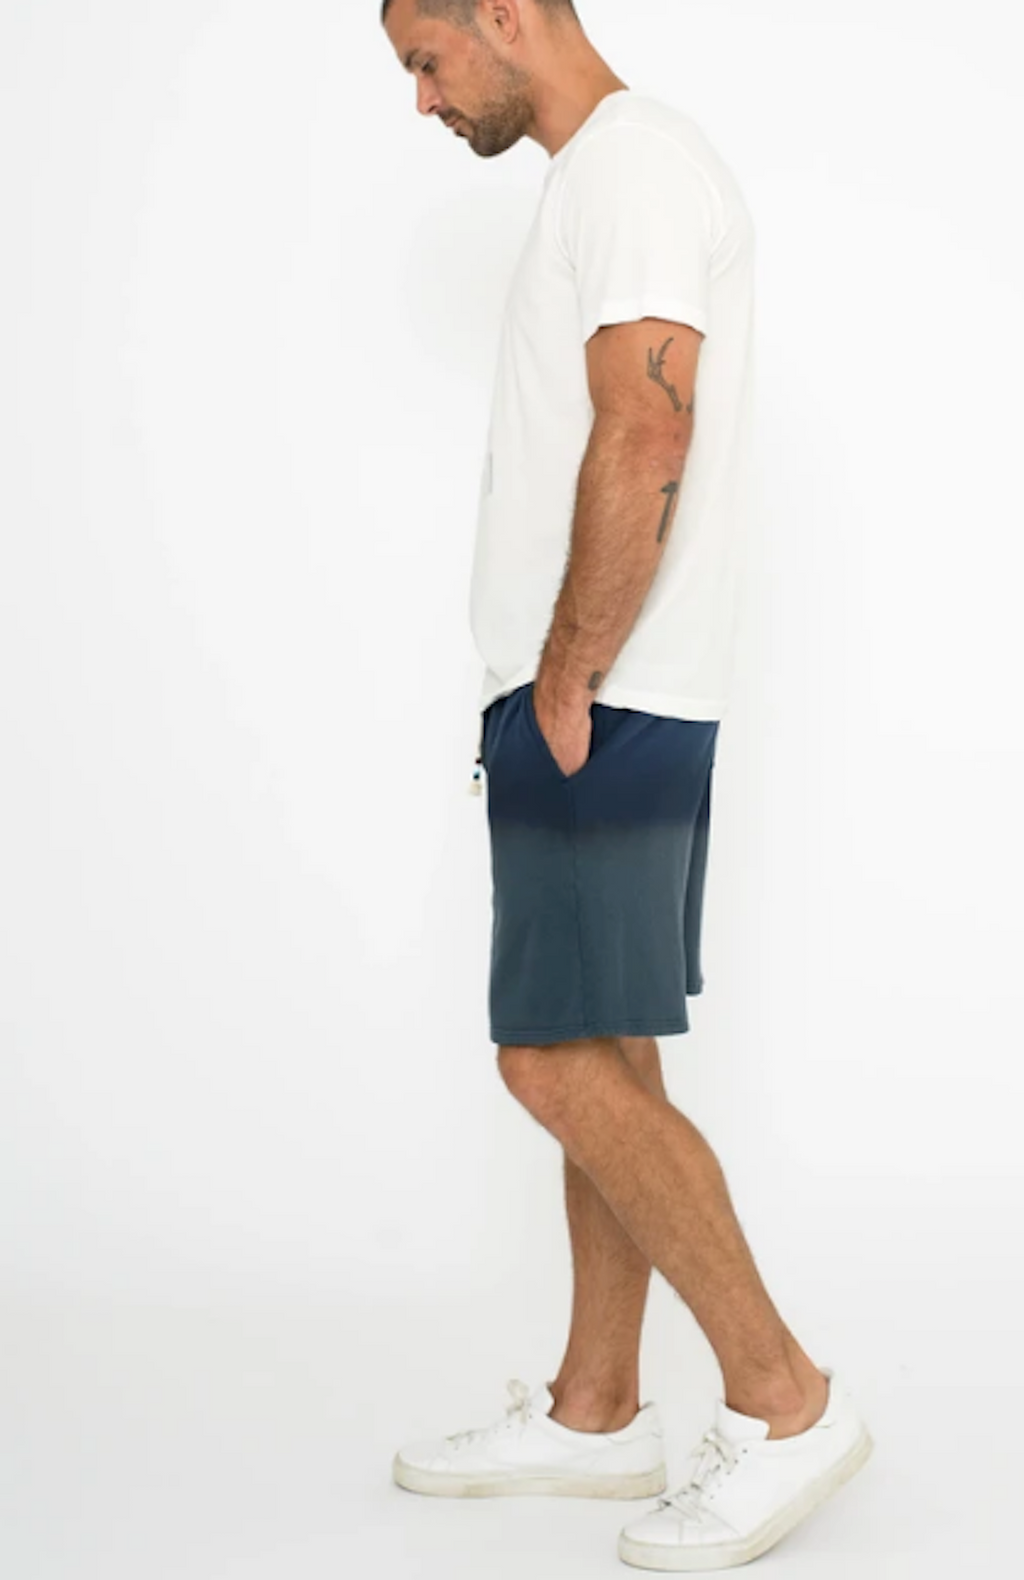 Sol Angeles Shorts in blue and green